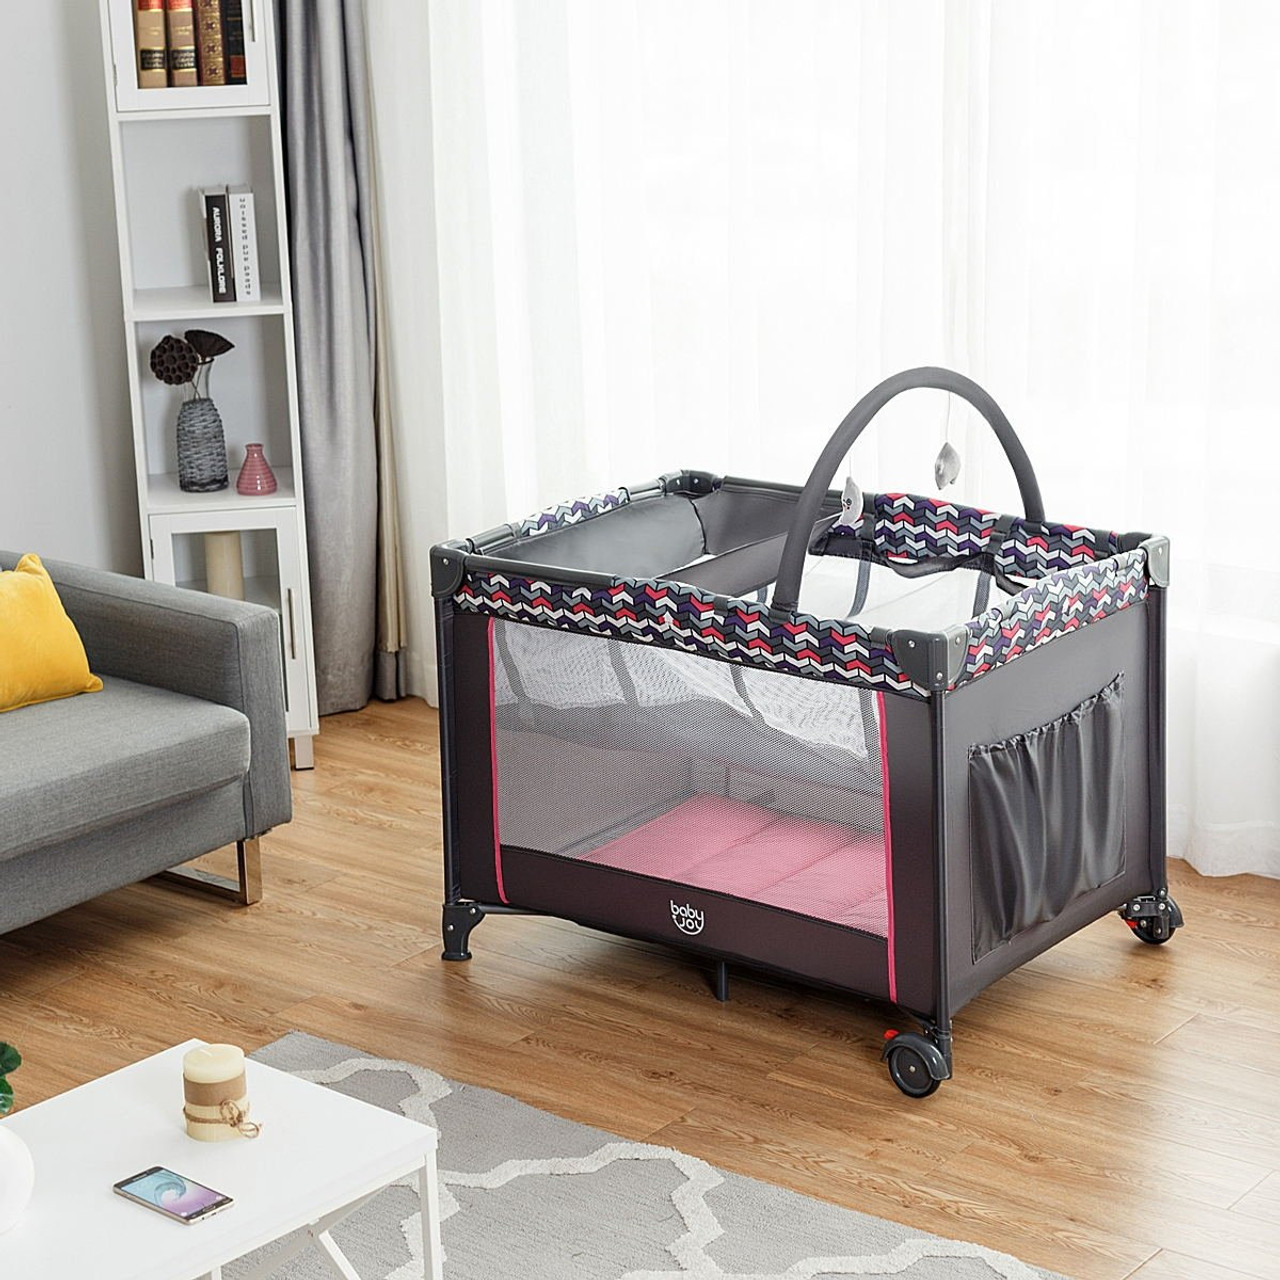 Folding Travel Baby Crib Playpen With Baby Toys Bb4922 By Cw